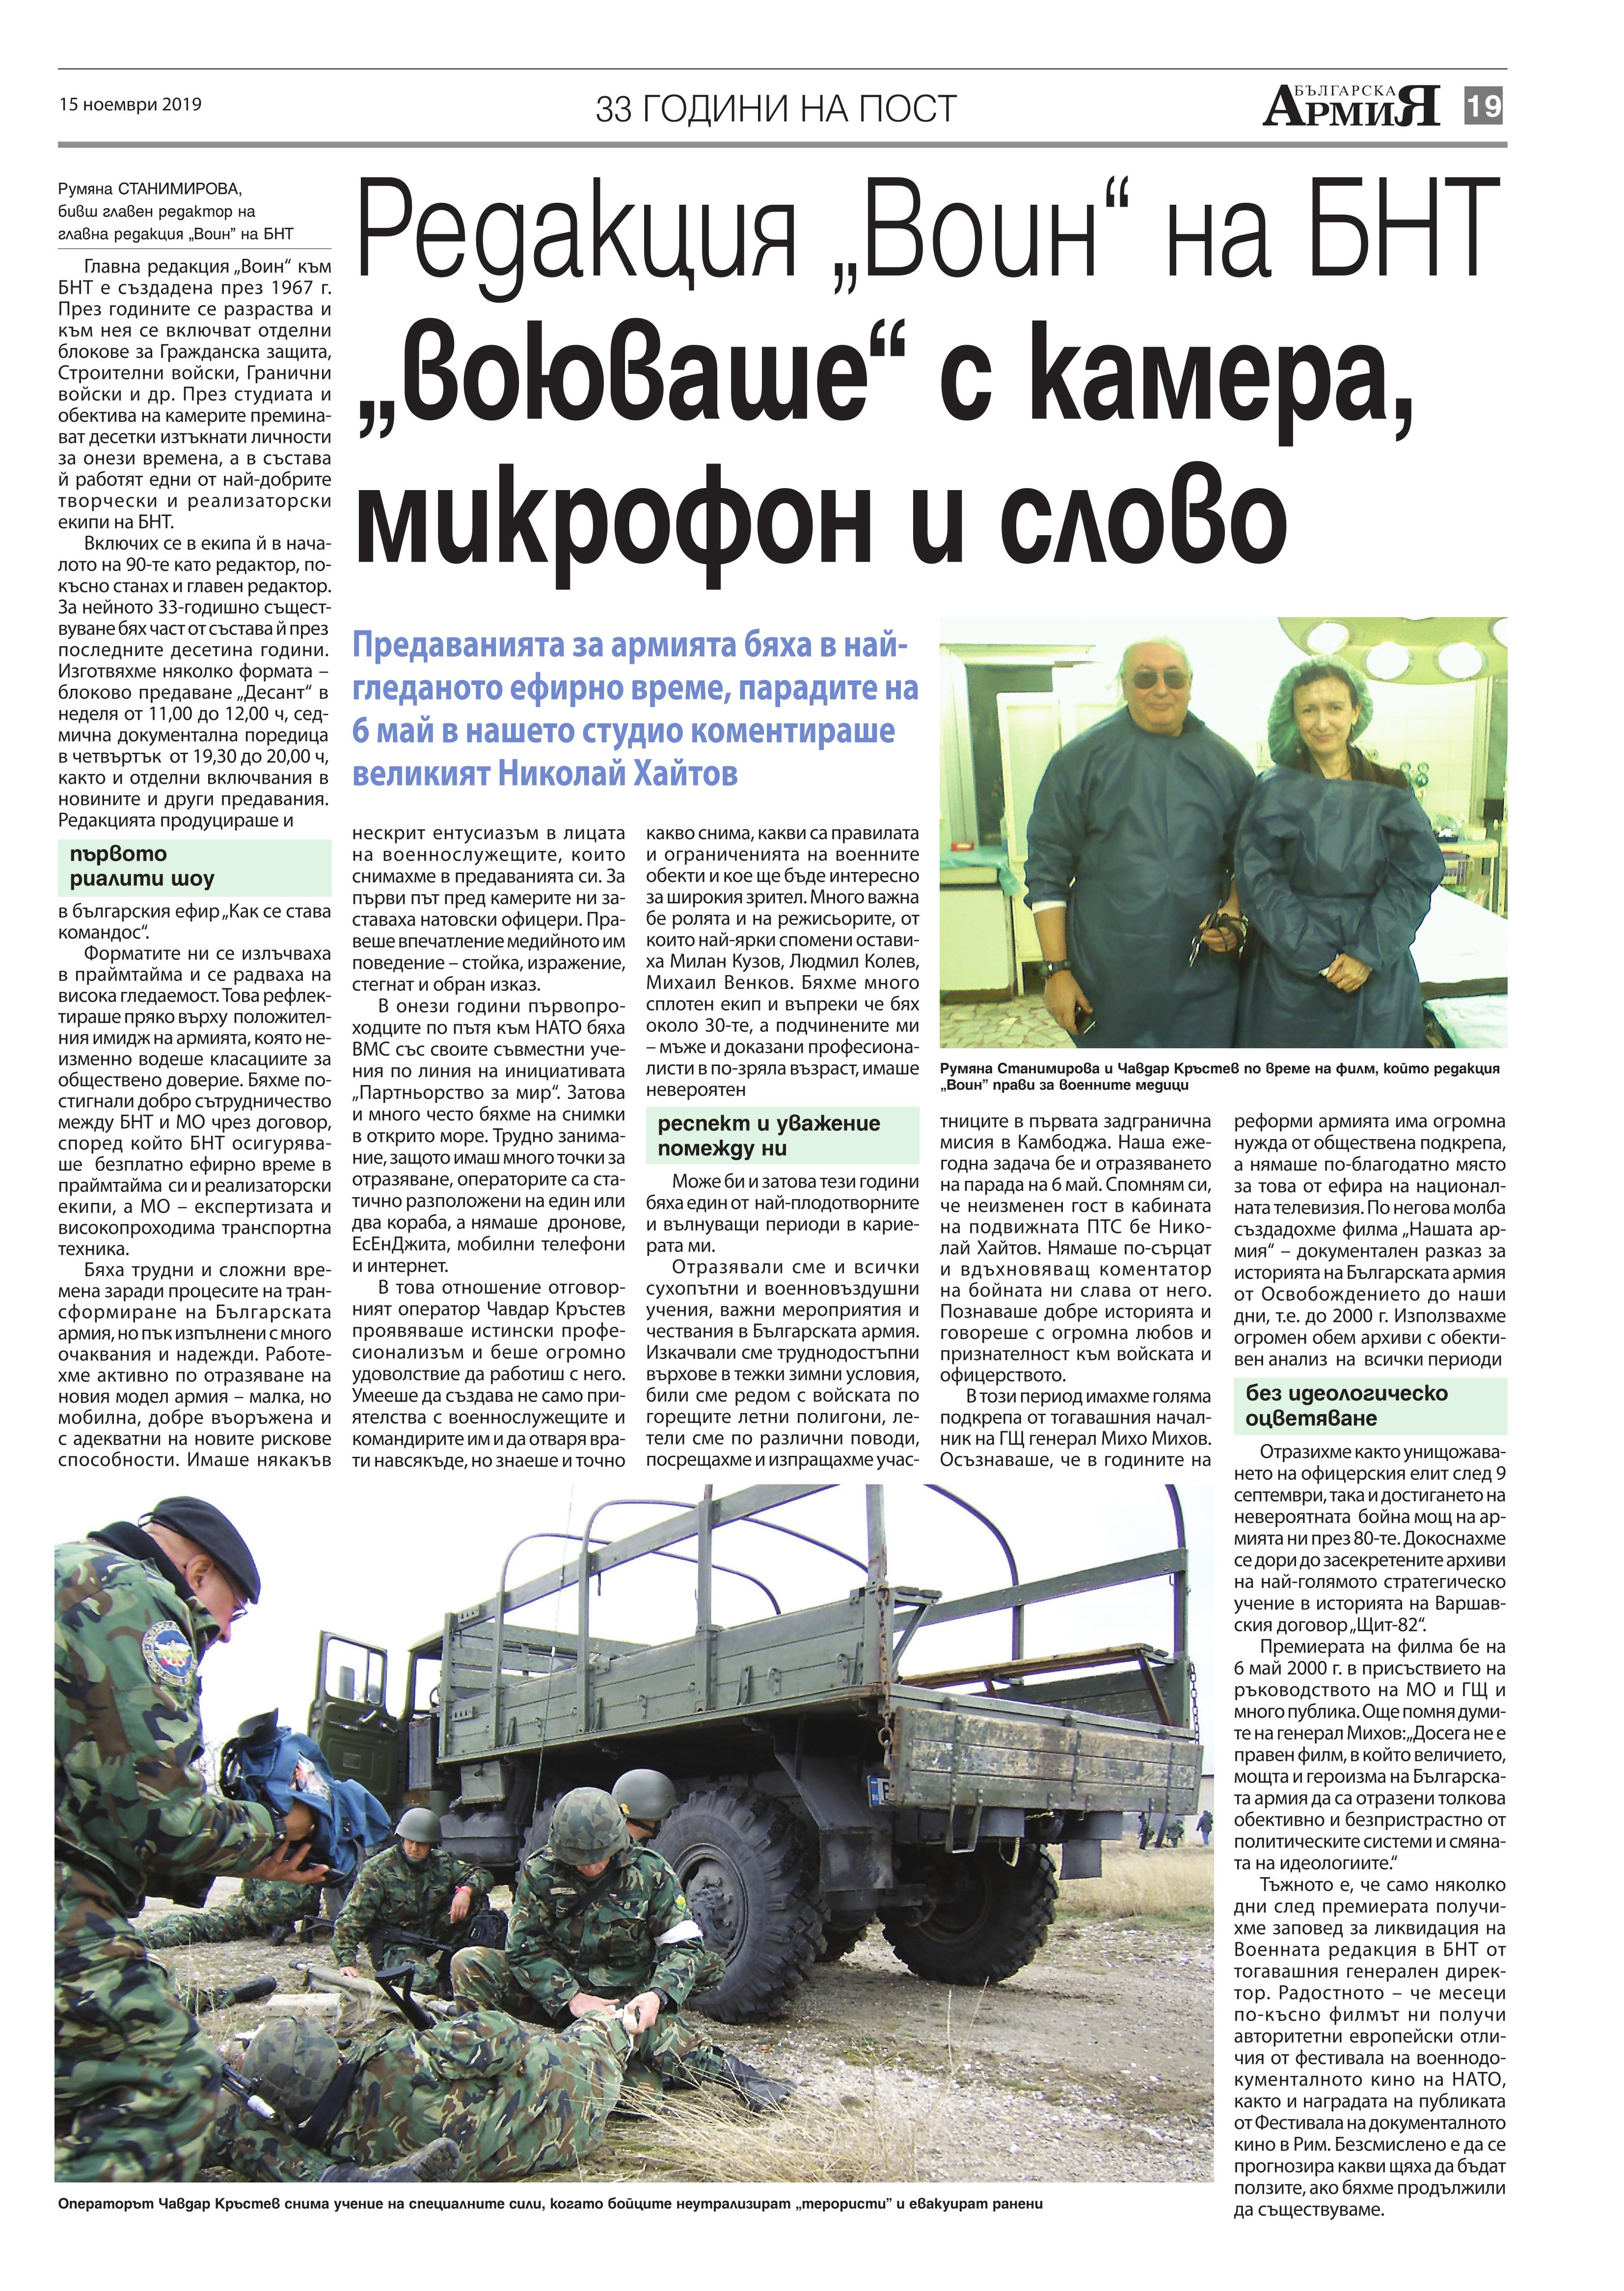 https://www.armymedia.bg/wp-content/uploads/2015/06/19.page1_-117.jpg